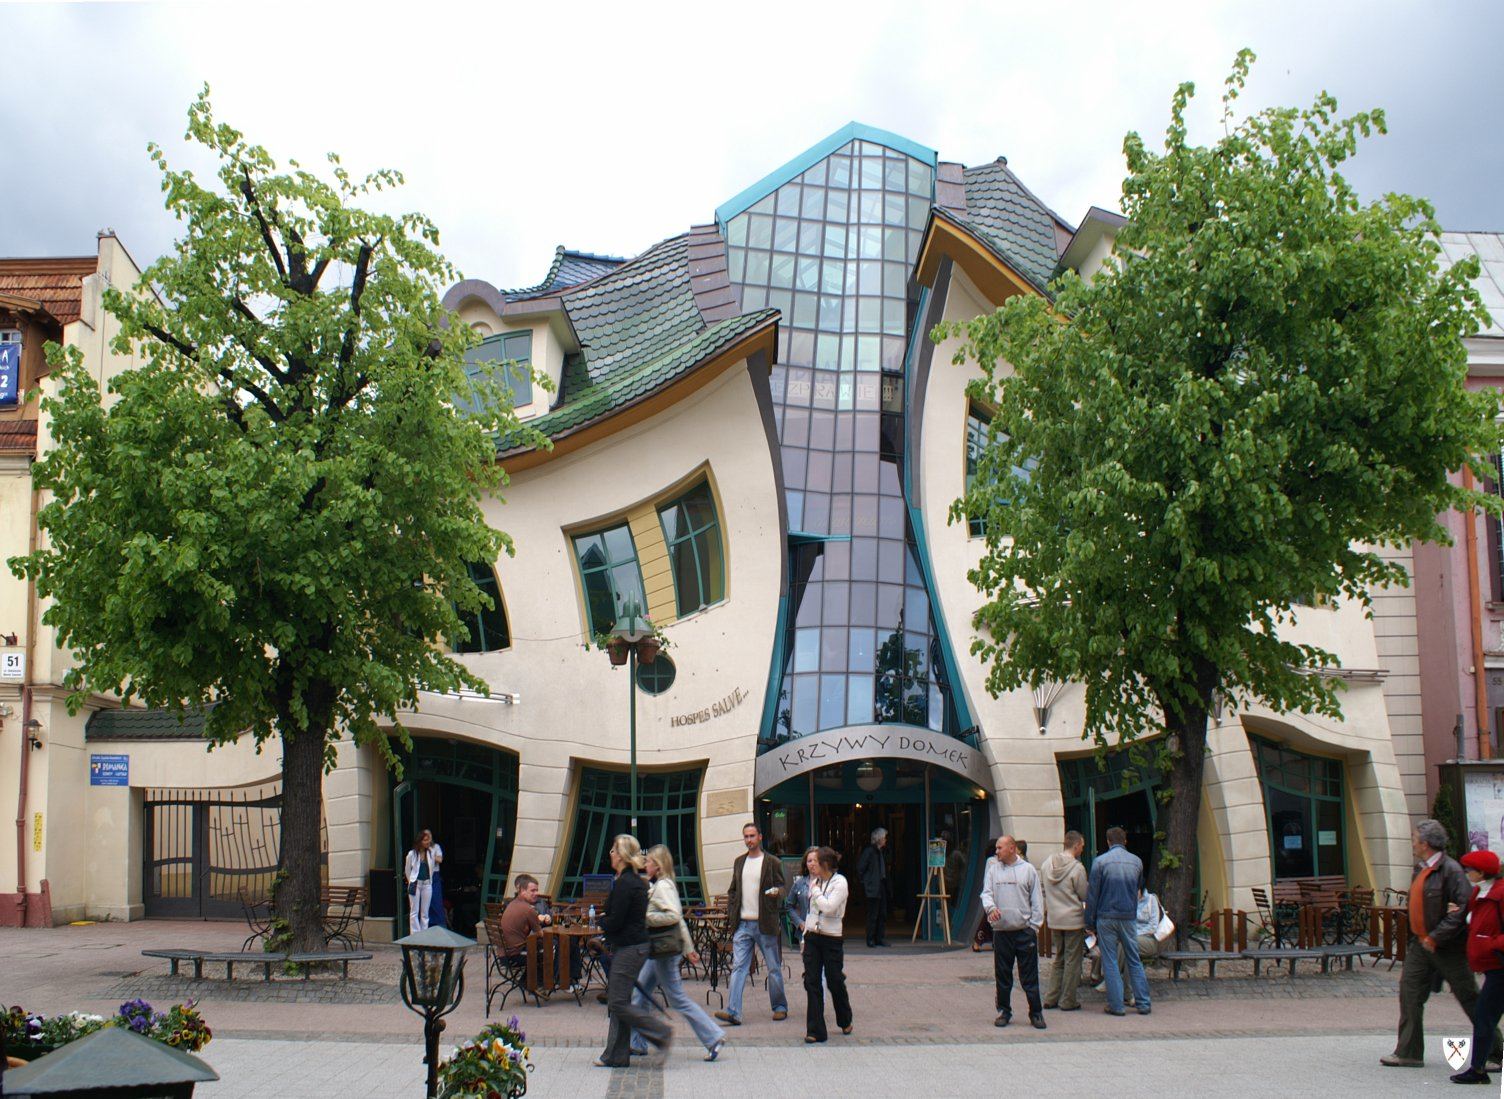 Unusual Tourist Atttractions Krzywy Domek The Crooked House Sopot Poland